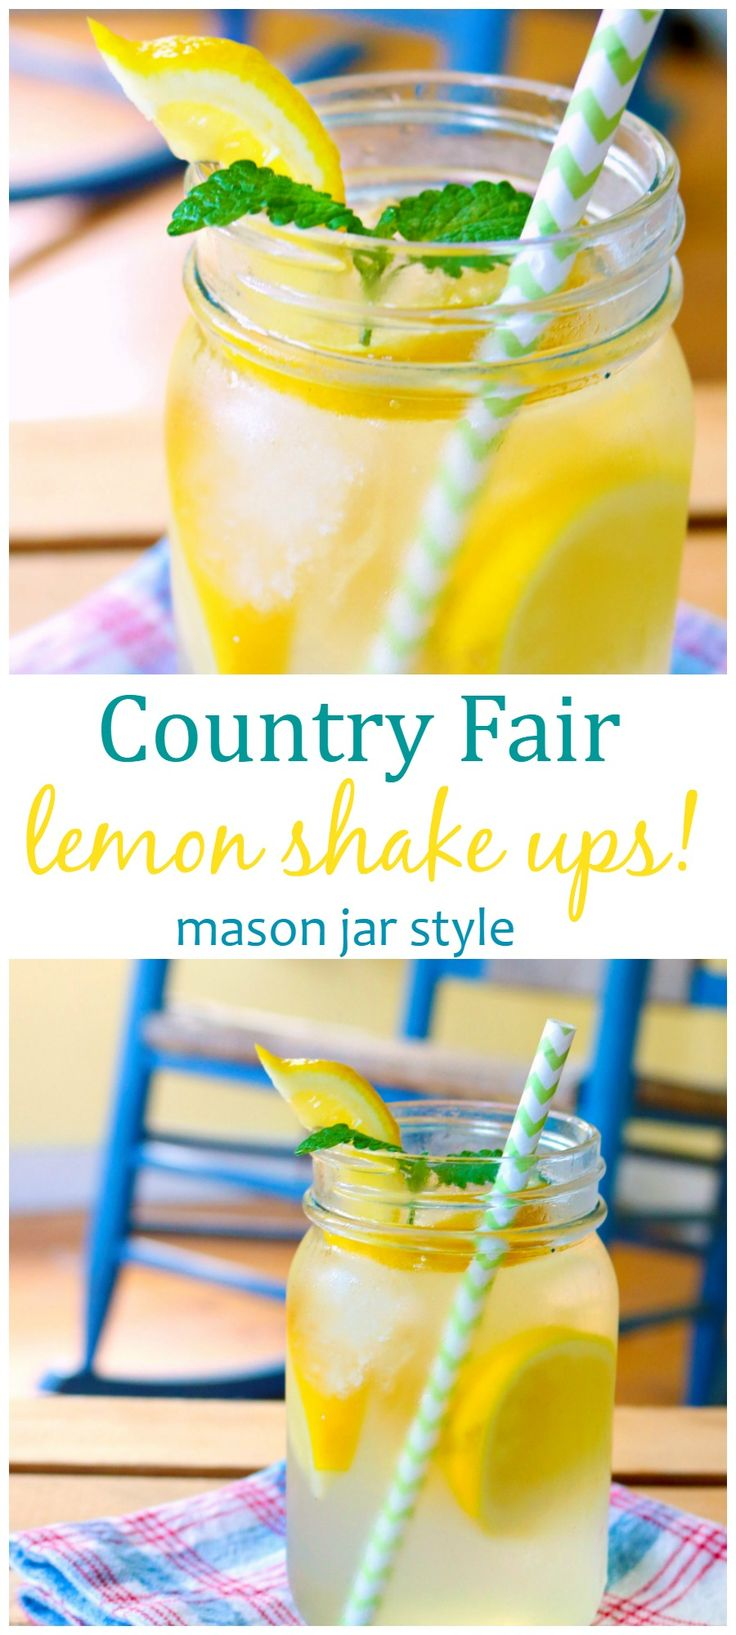 Love that fair lemonade?  Bring it home with you!  Our easy mason jar lemon shake up recipe will quench your summer thirst!  <3